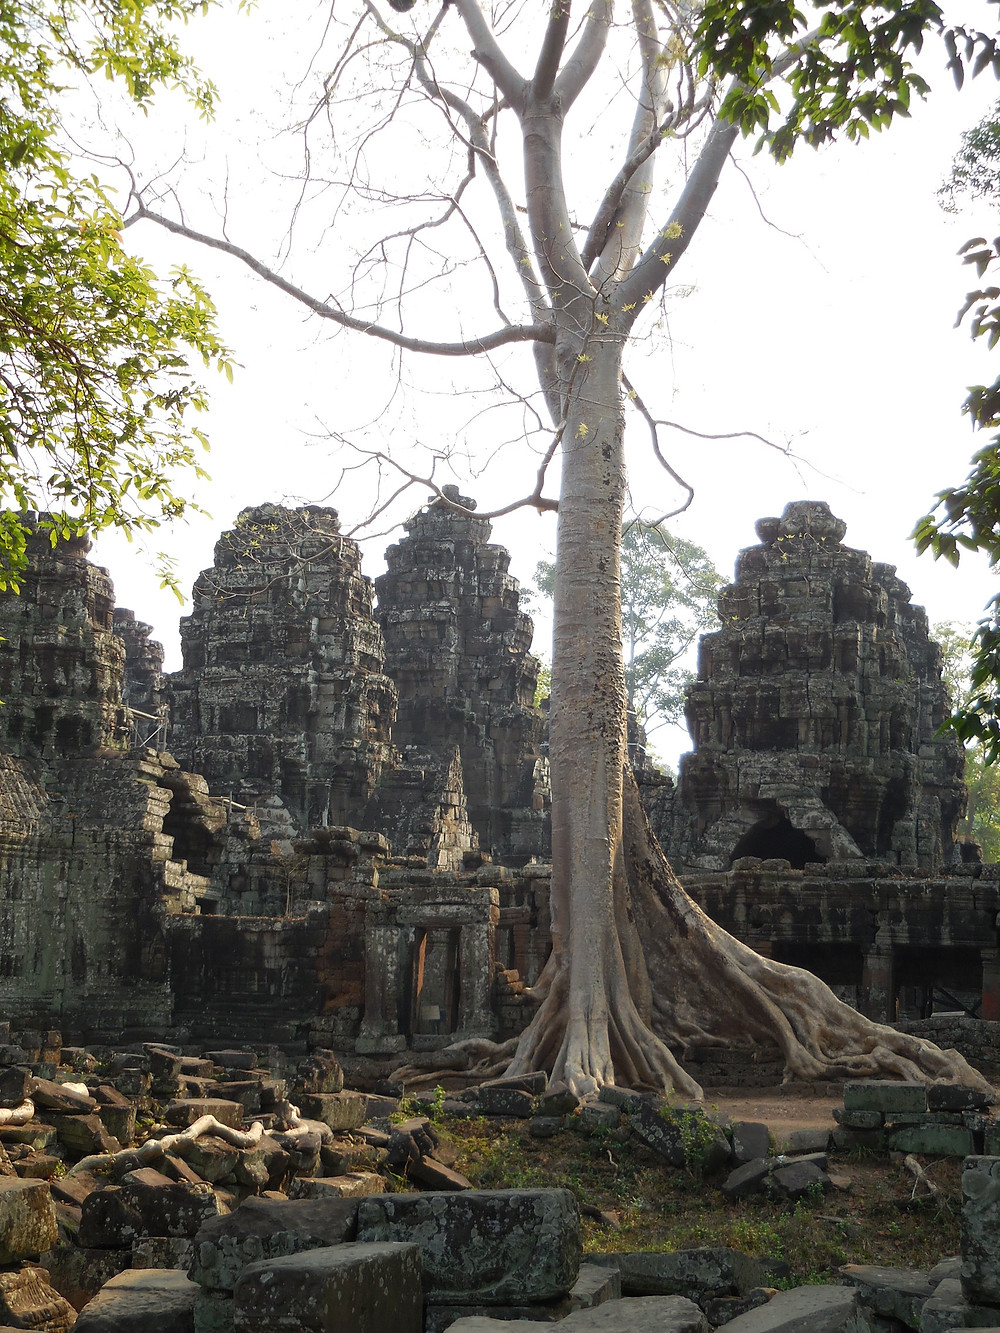 Looking at Banteay Kdei from the back side